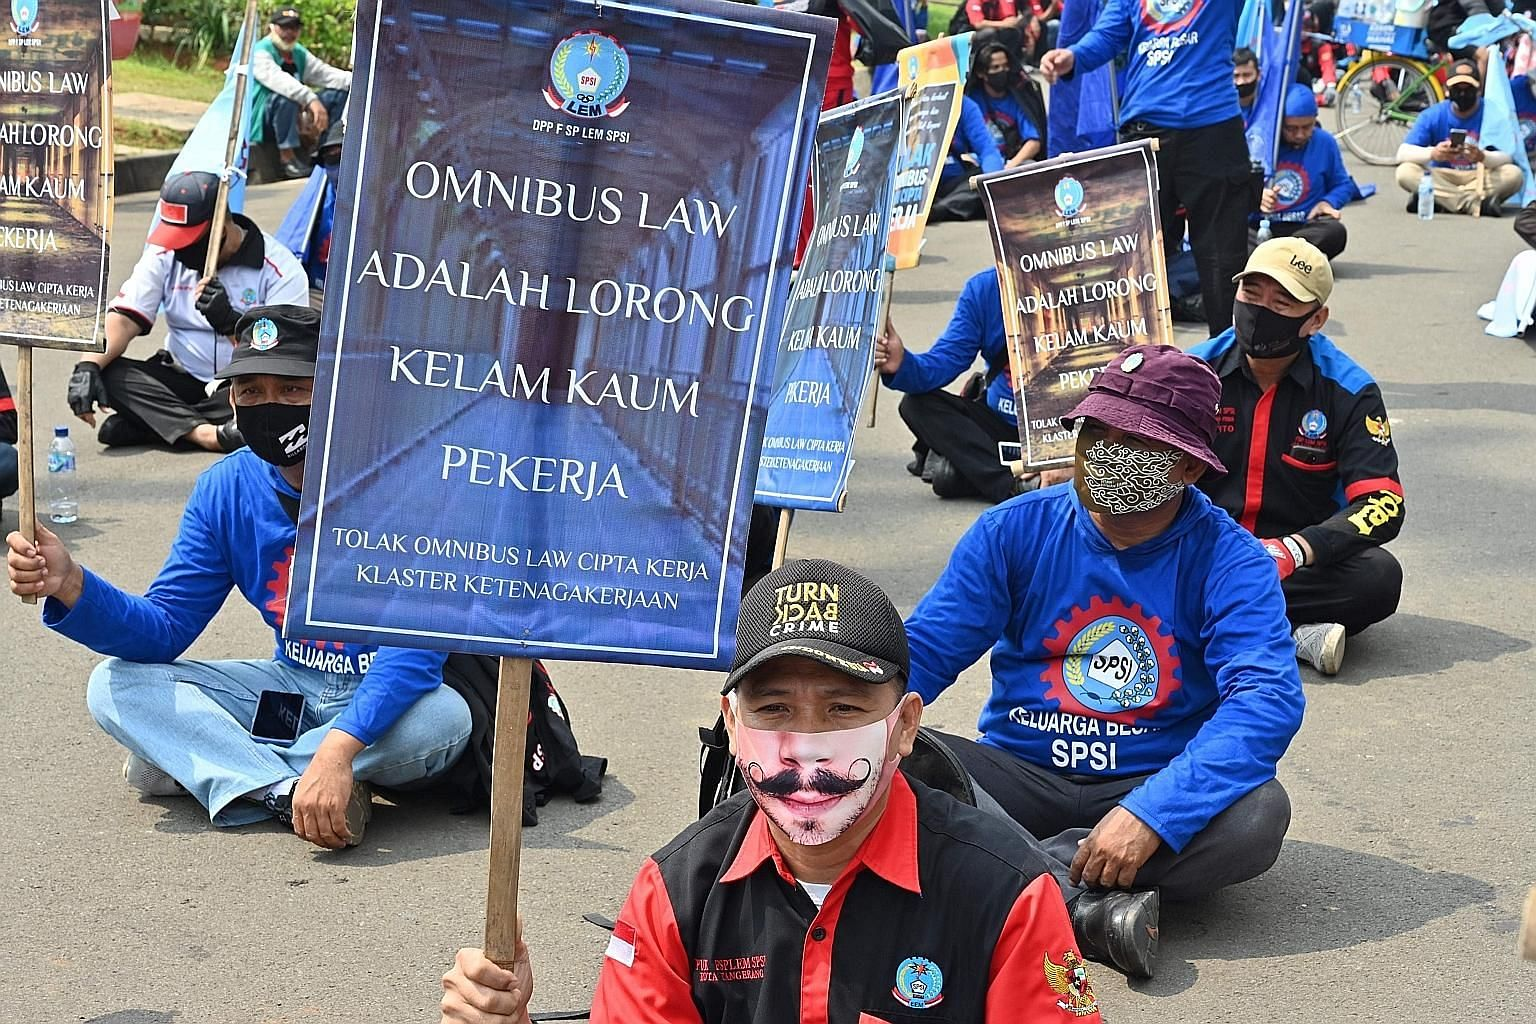 Indonesian workers protesting outside the presidential palace in Jakarta on July 22 against the Bill on job creation they believe will deprive workers of their rights. The Bill will allow employers to hire and fire with lower severance pay and benefi